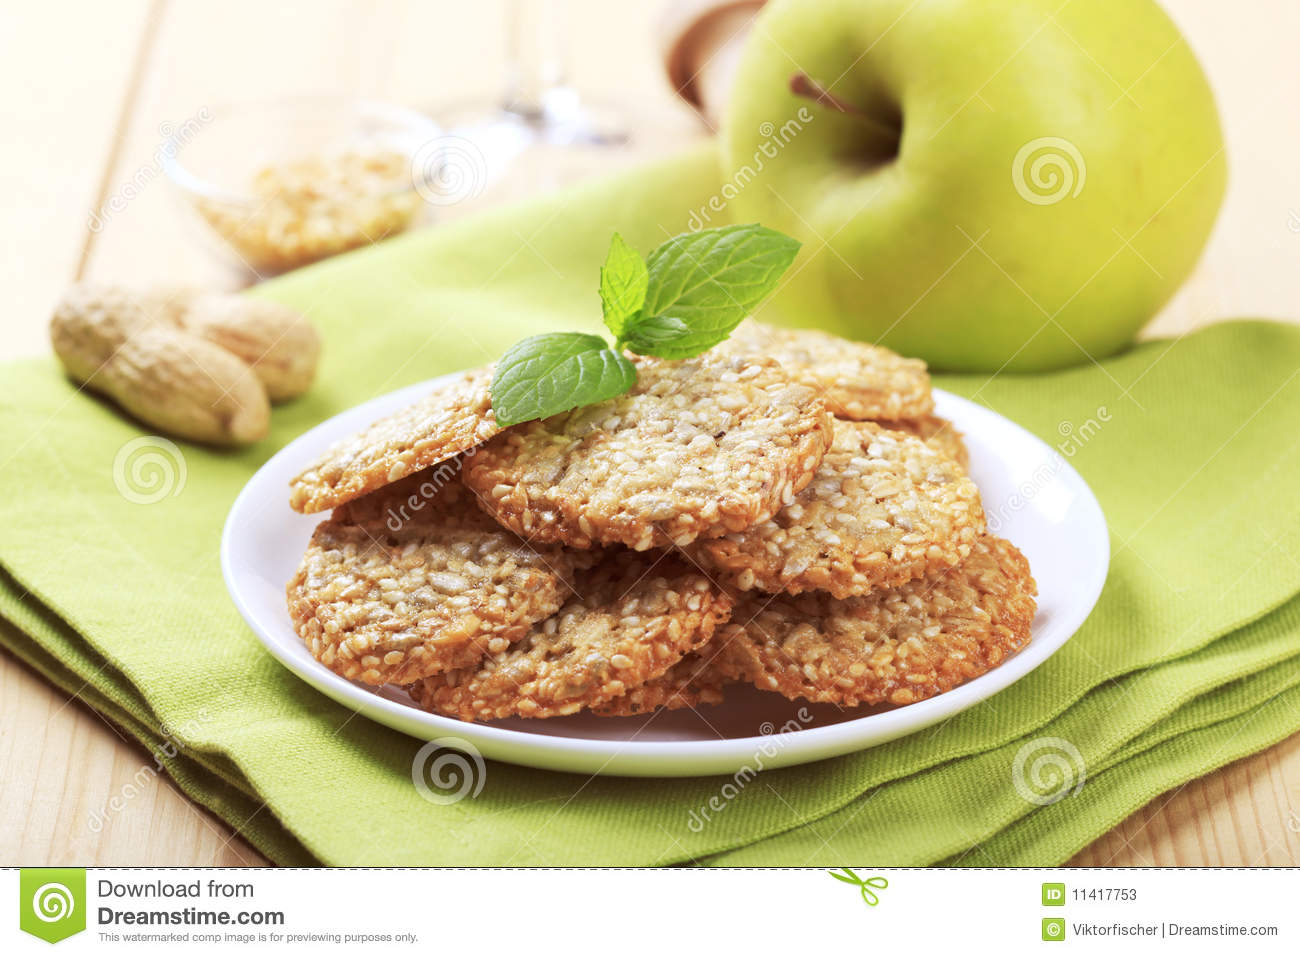 Healthy cookies made from sesame seeds, sunflower seeds, peanuts and ...